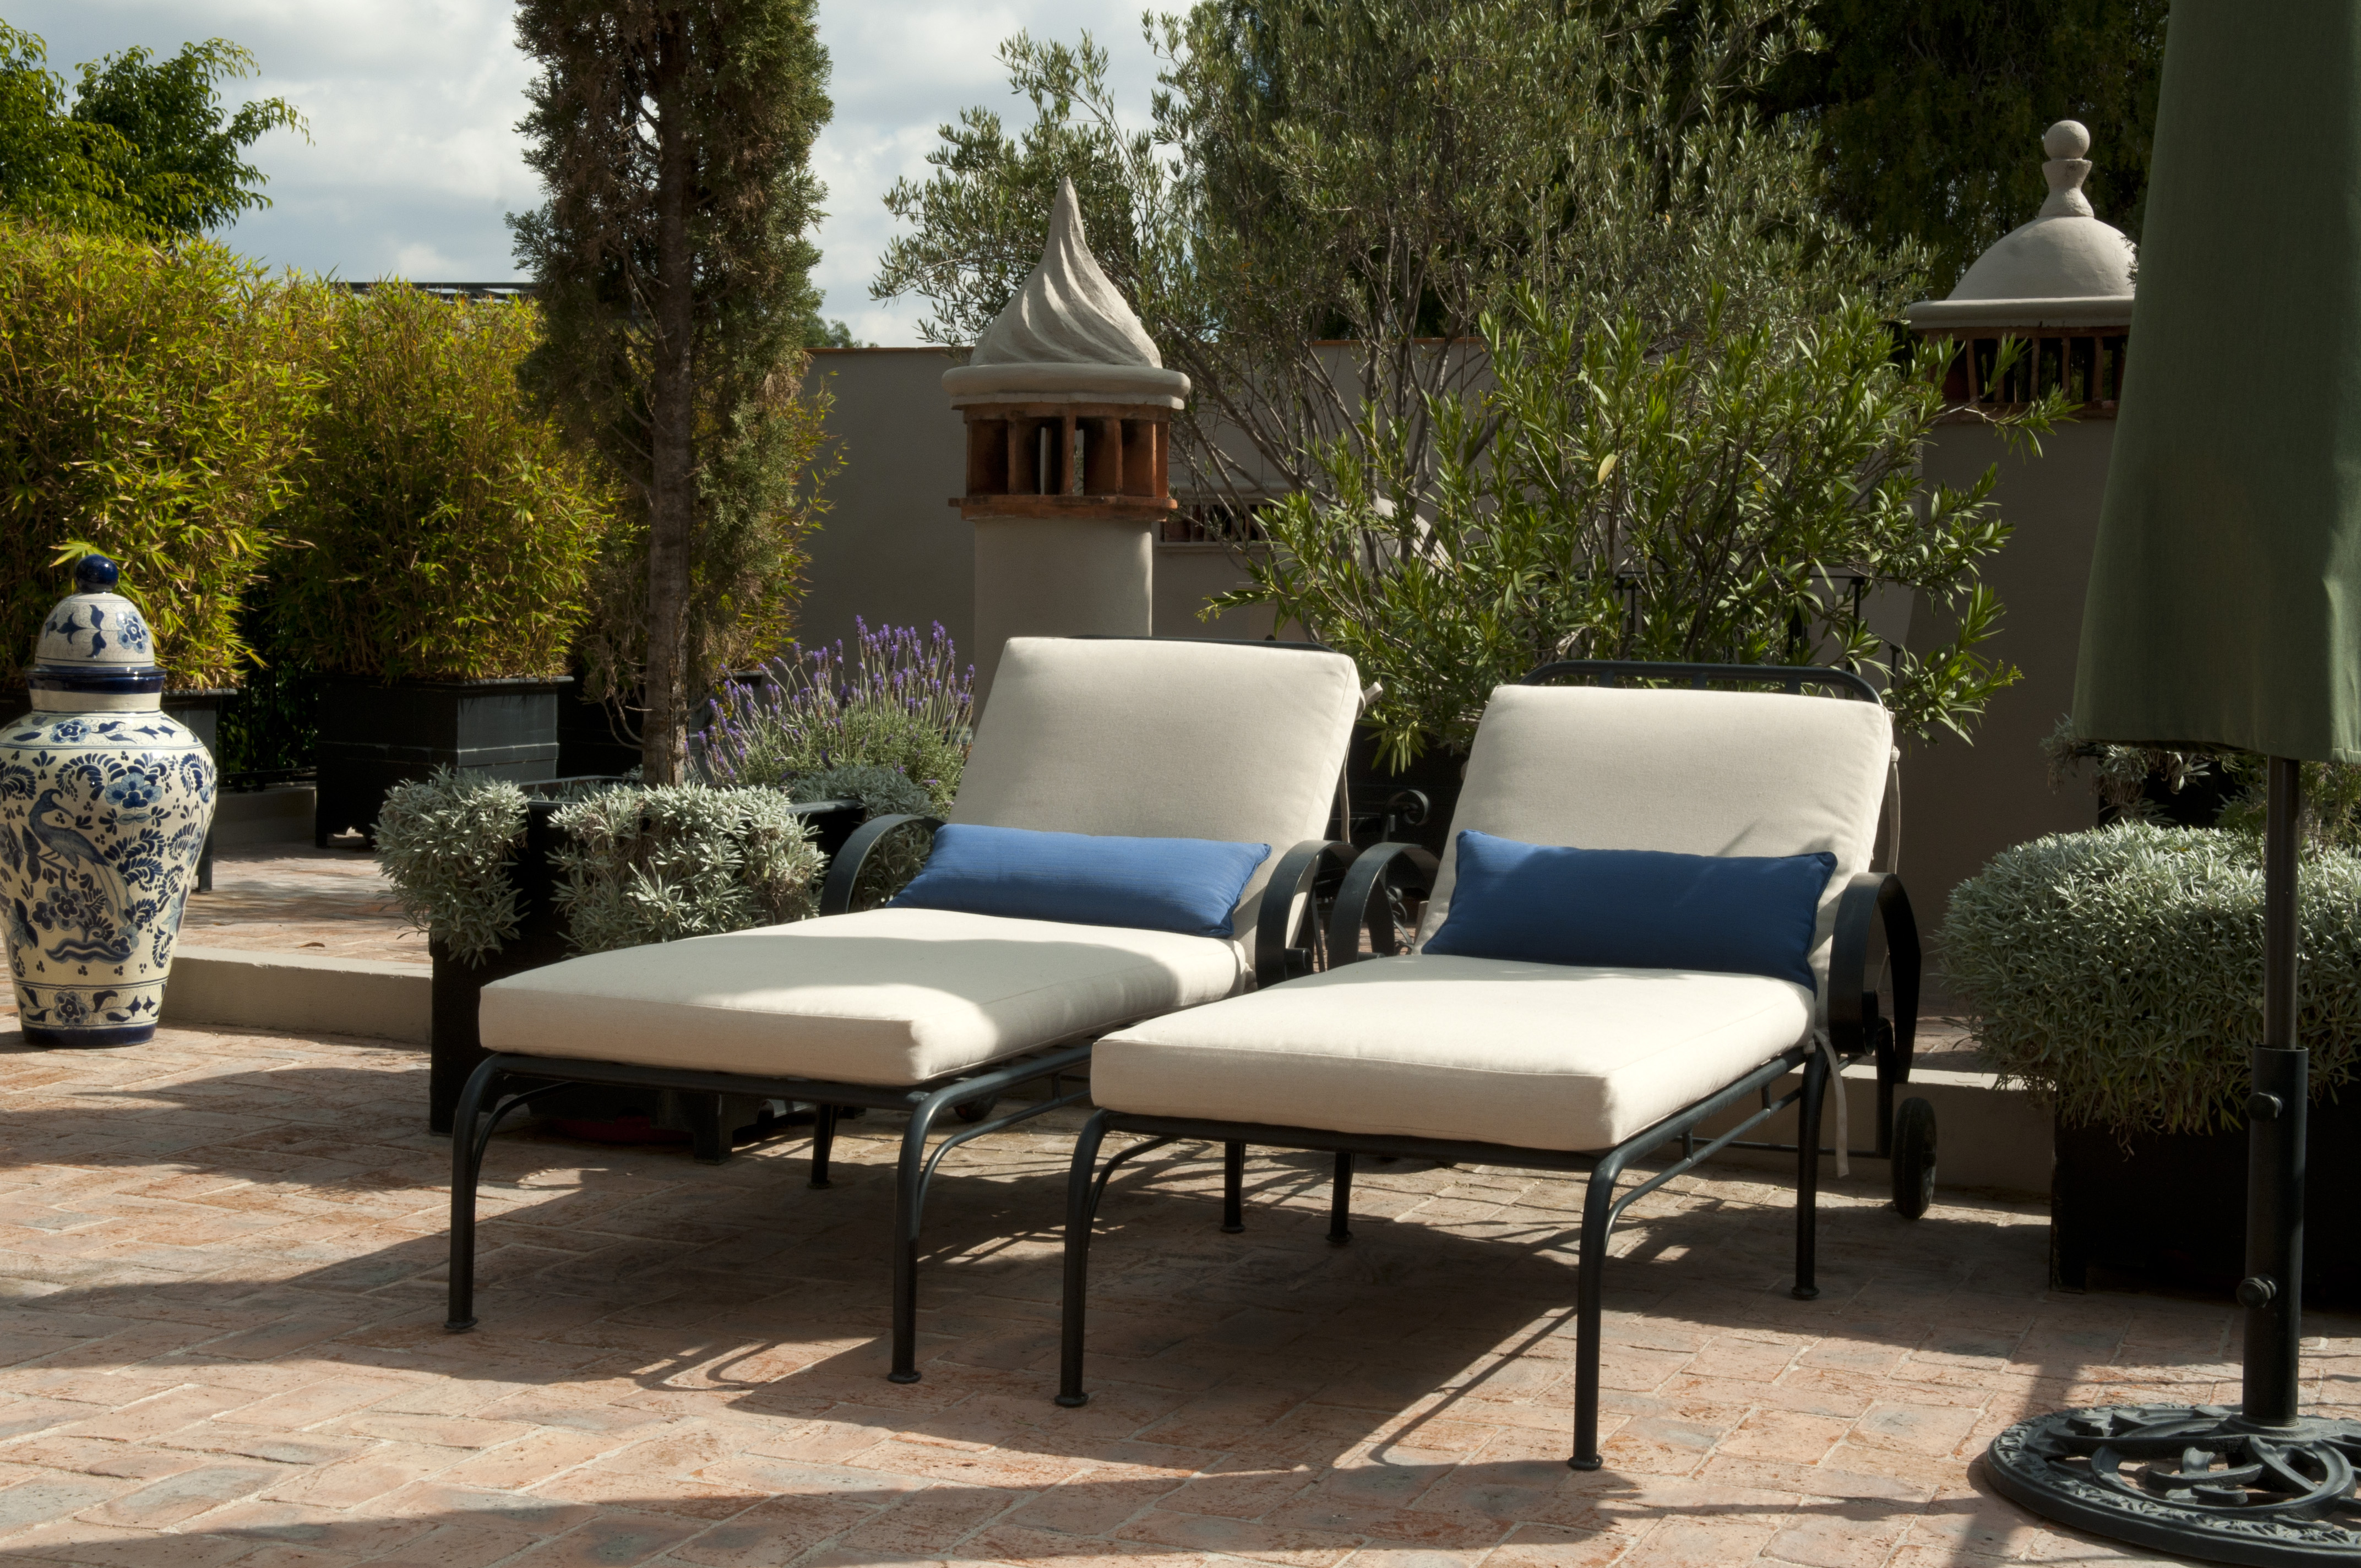 Casa Alegria roof terrace lounge chairs